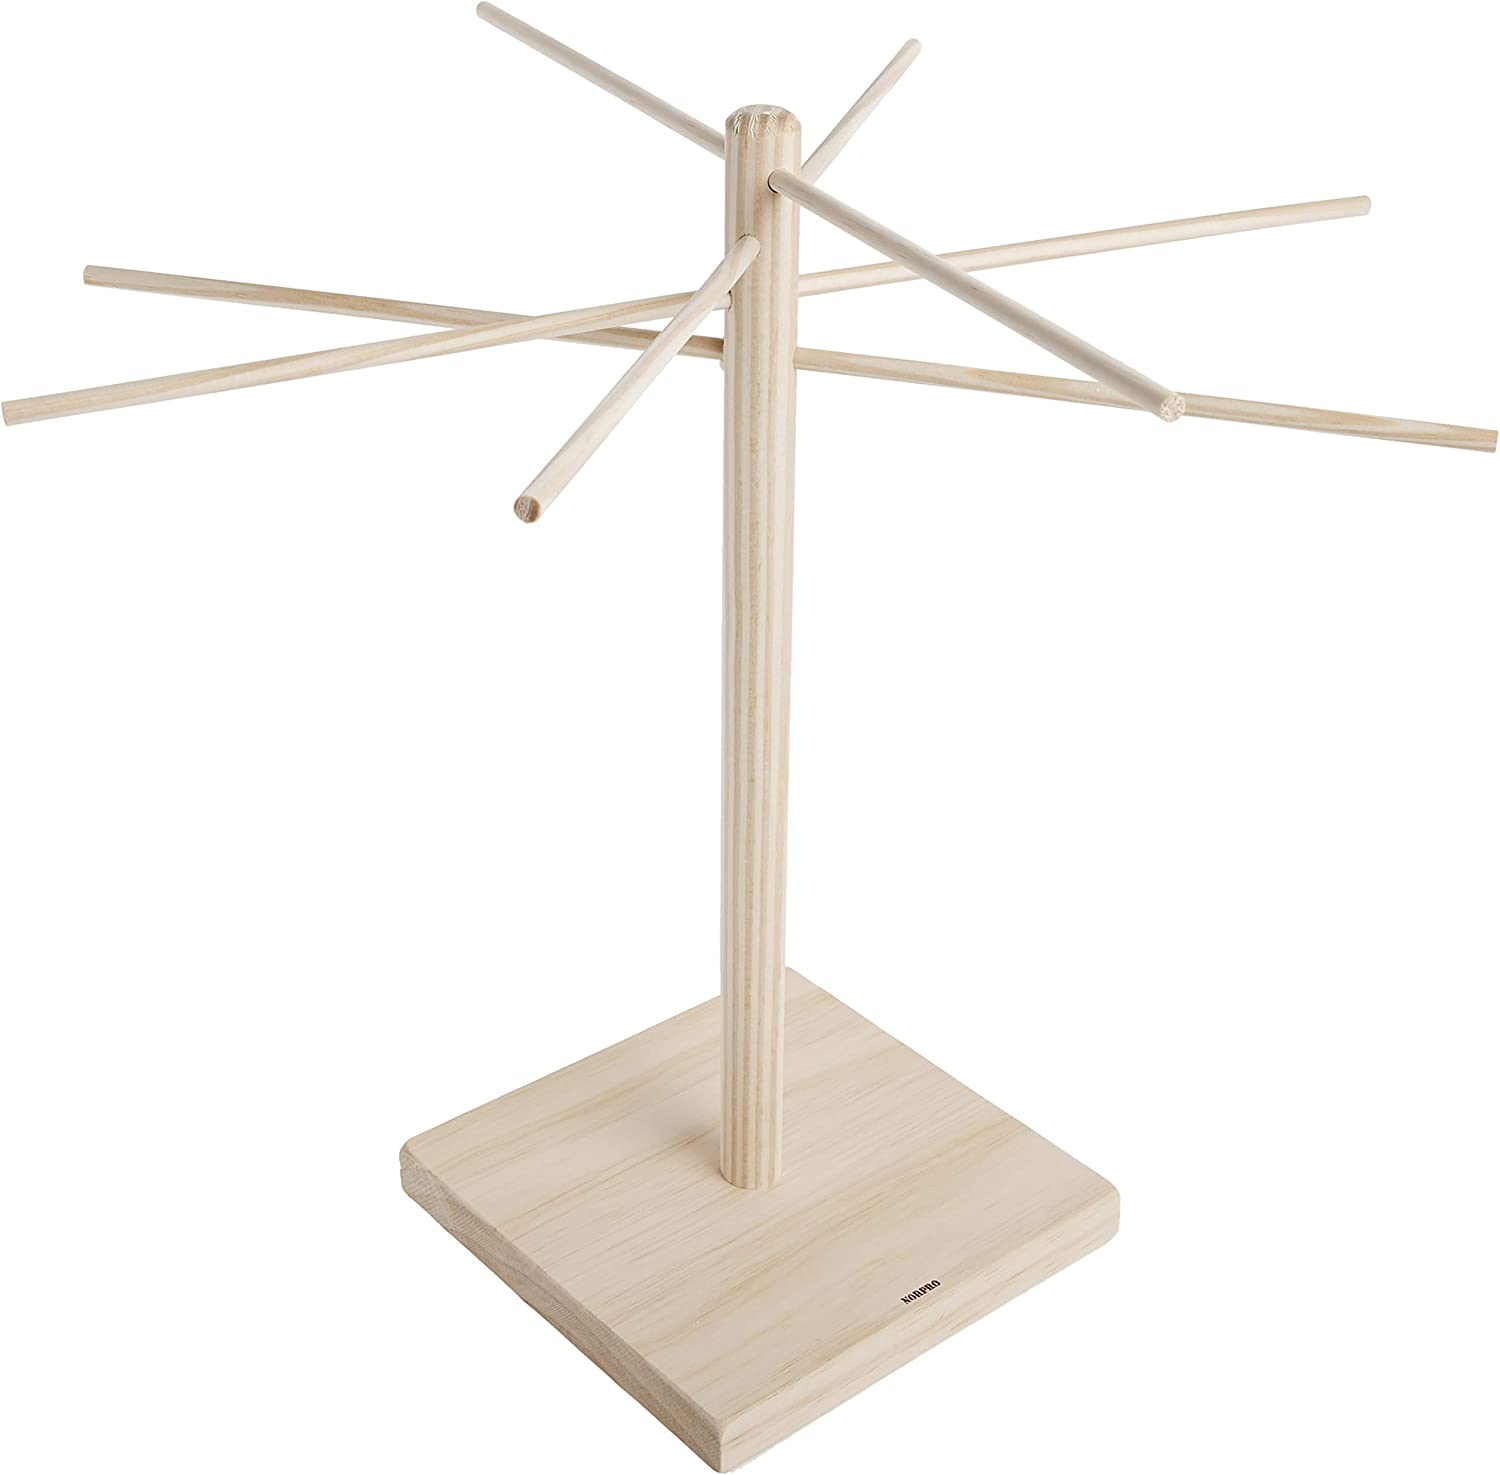 Norpro Pasta Drying Wood Rack 2021 2.6 All items free shipping